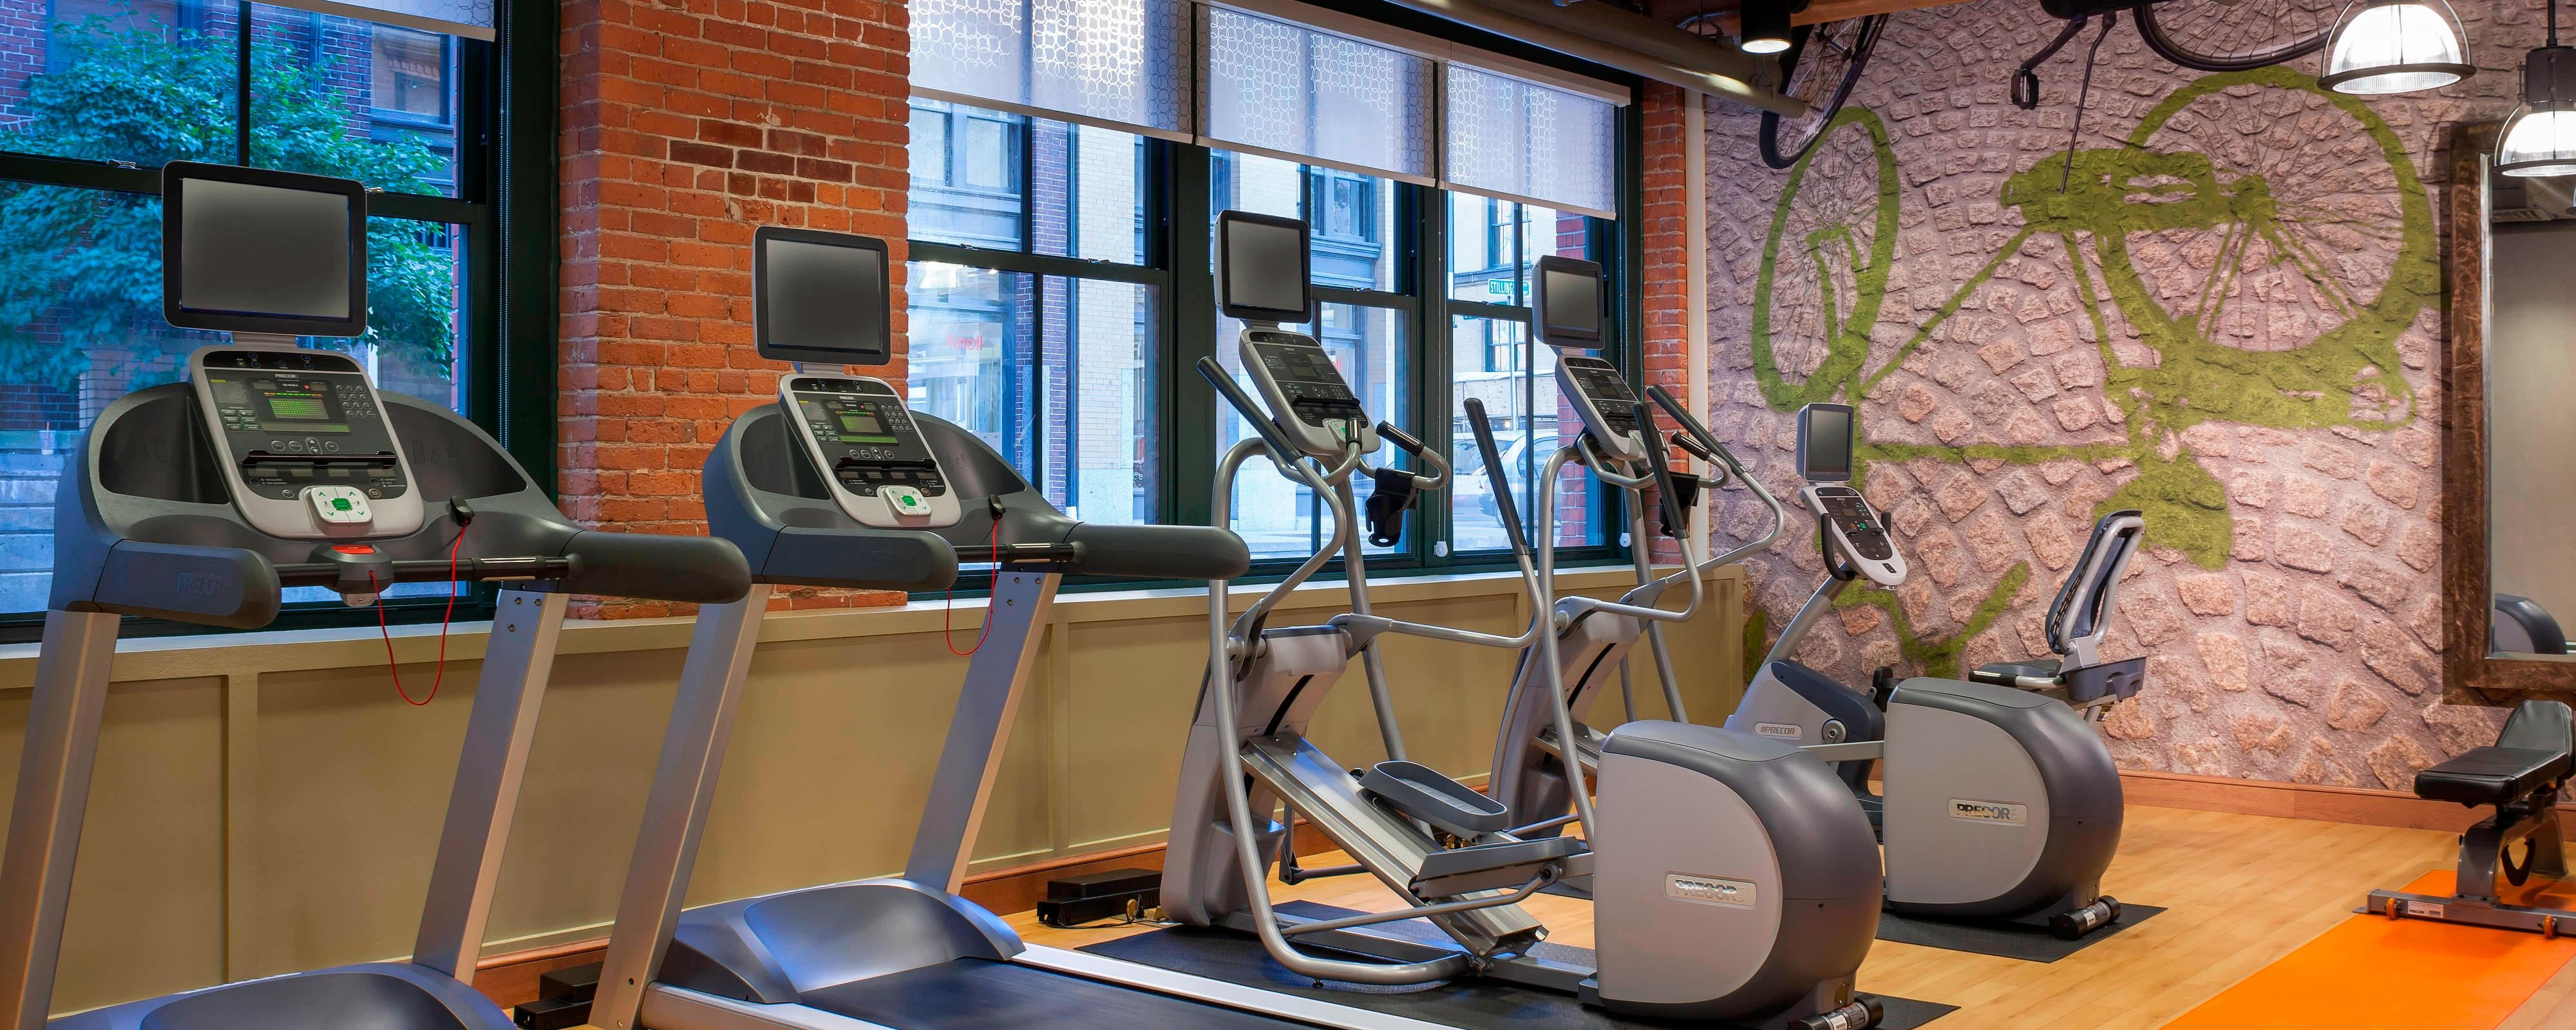 Residence Inn Seaport Fitness Center